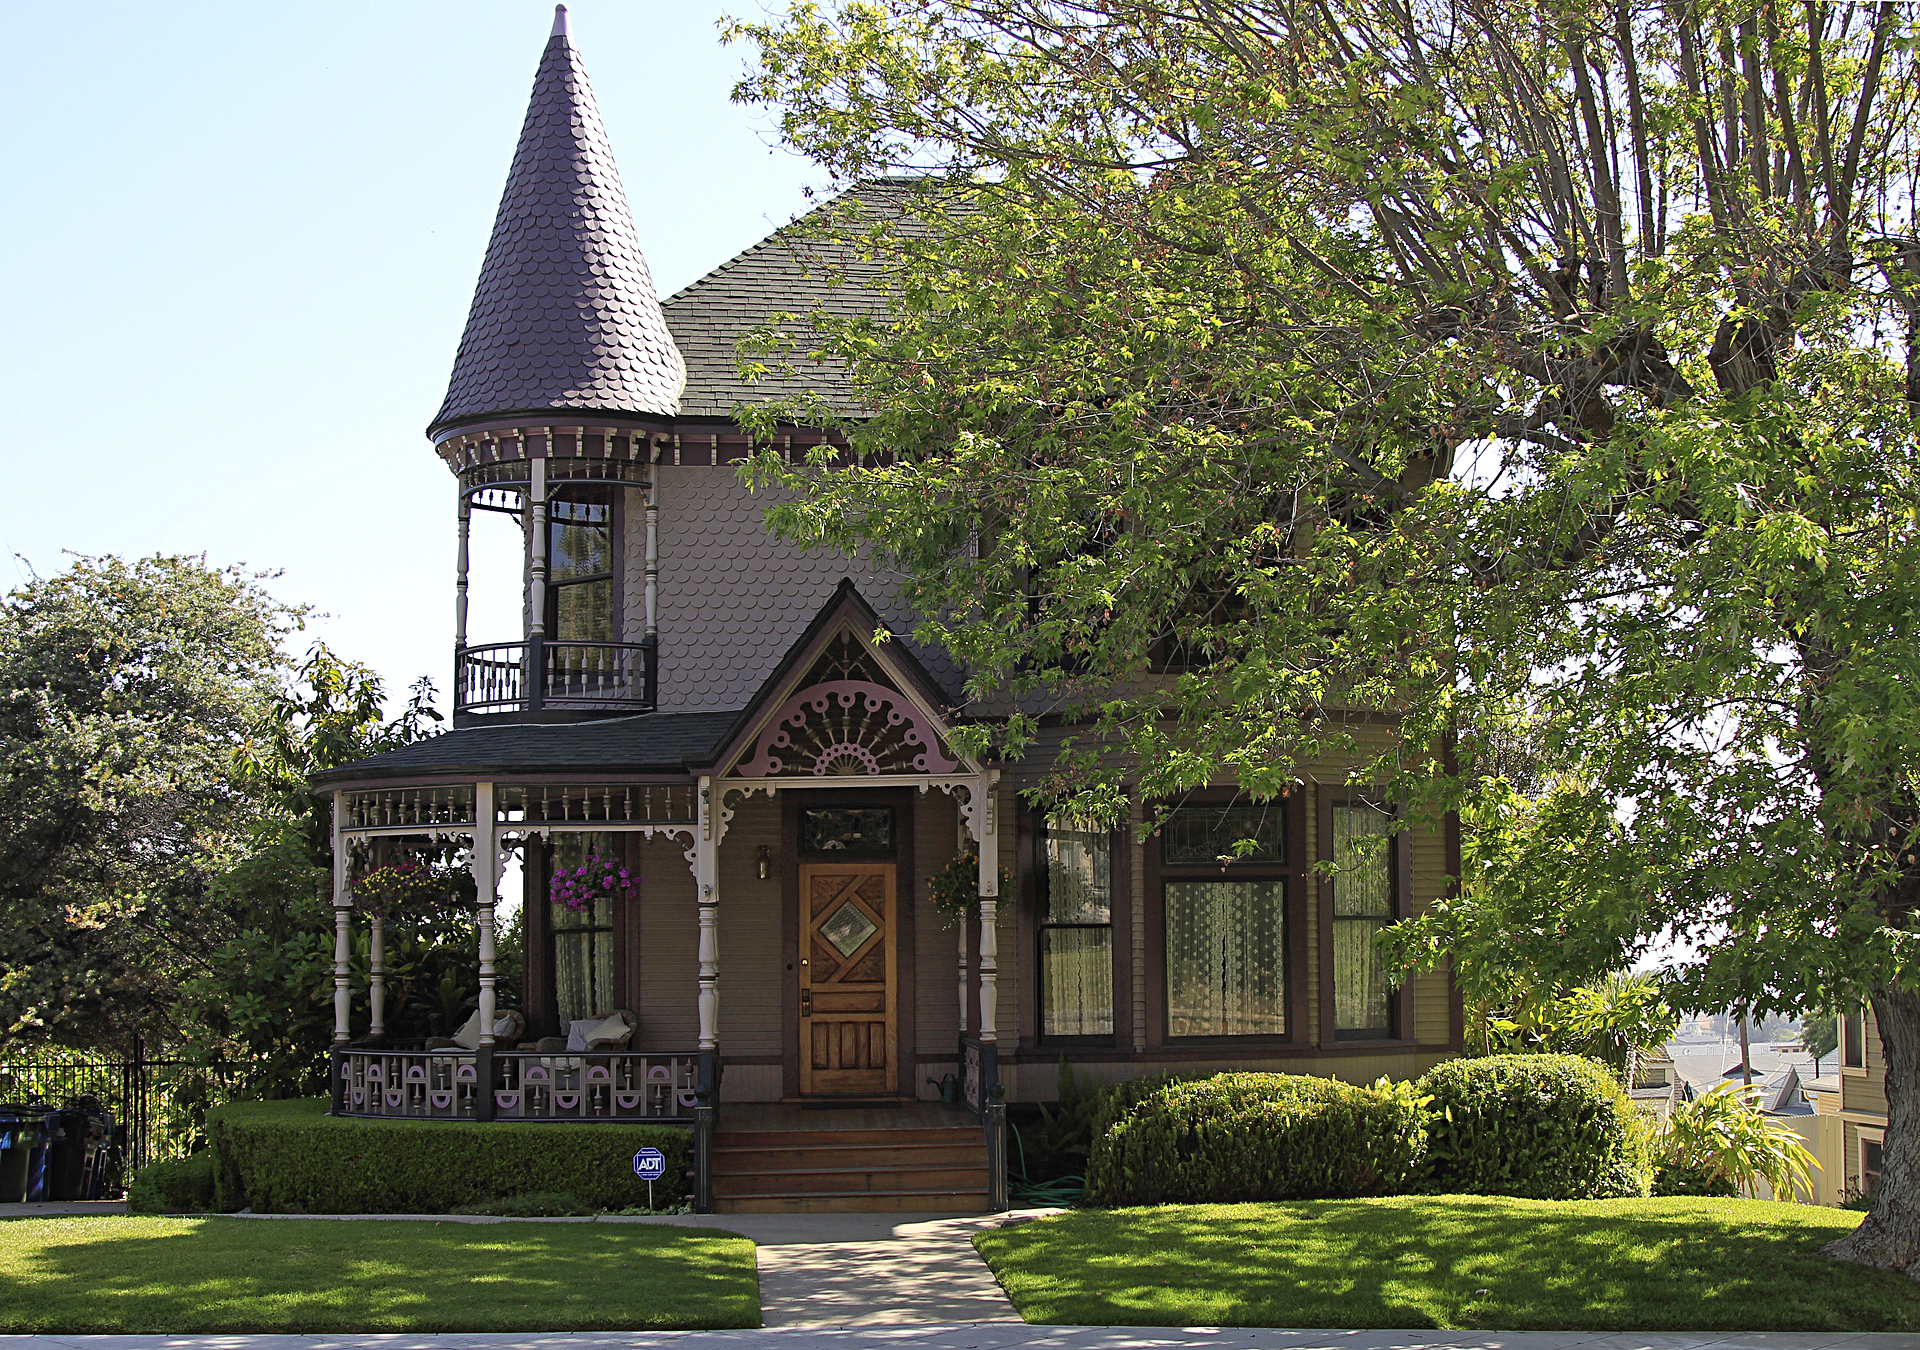 A home on Carroll Ave in Angelino Heights